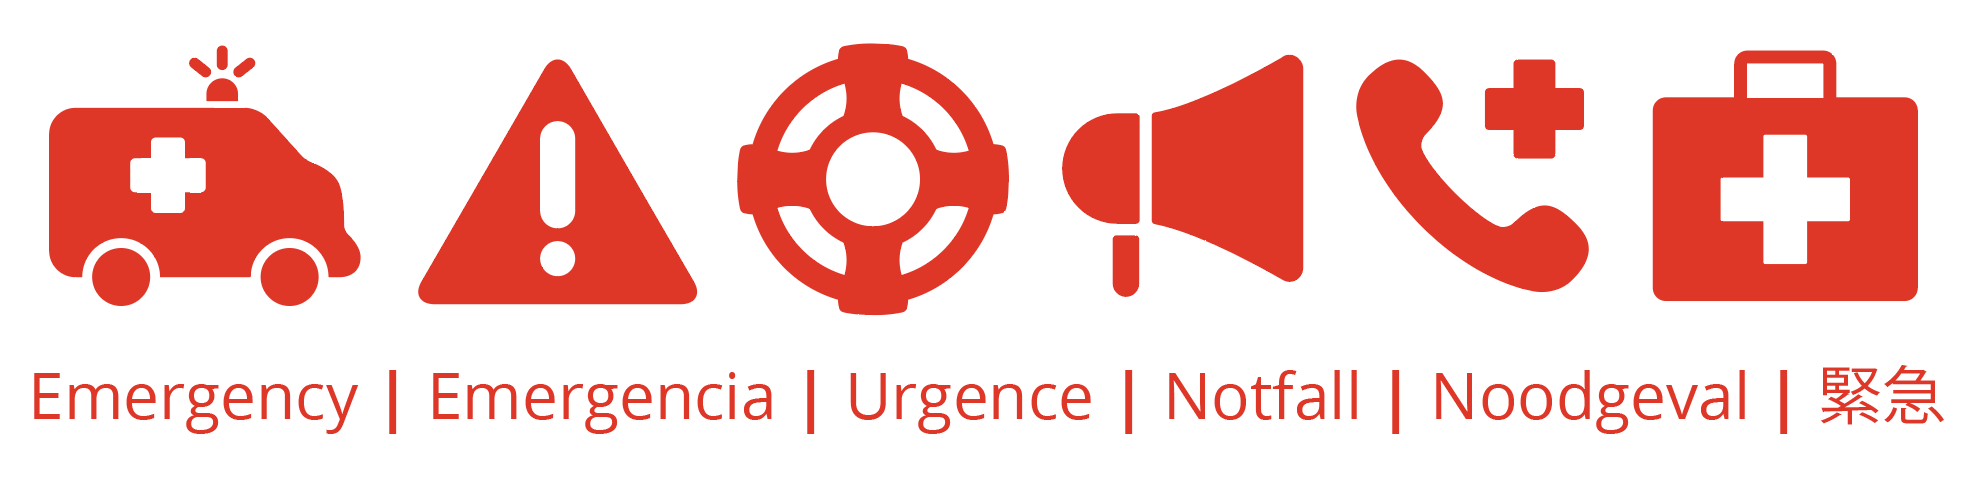 Assortment of emergency related icons